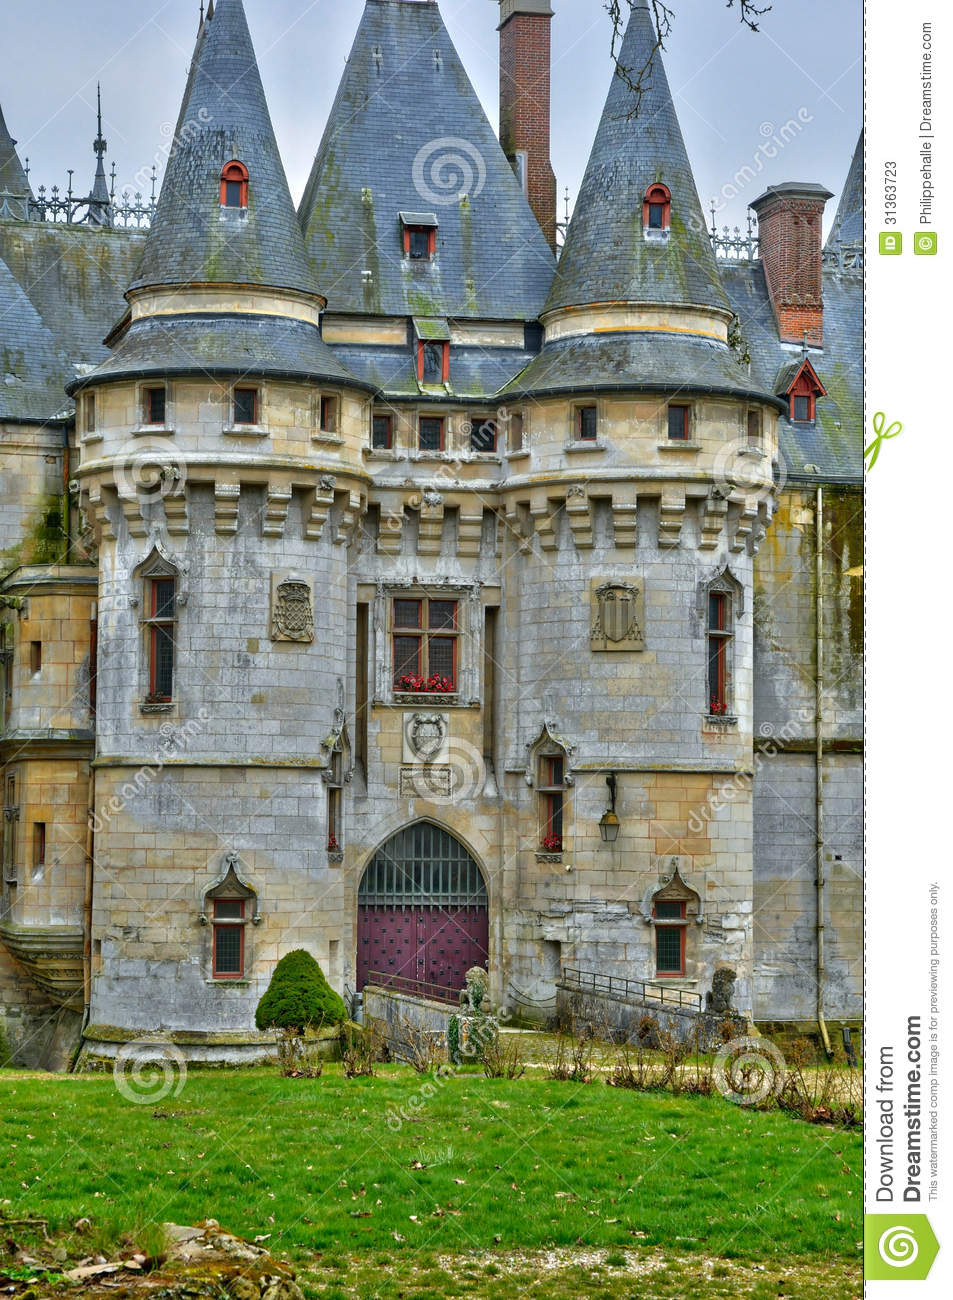 la francia il castello di vigny in val d oise immagine. Black Bedroom Furniture Sets. Home Design Ideas